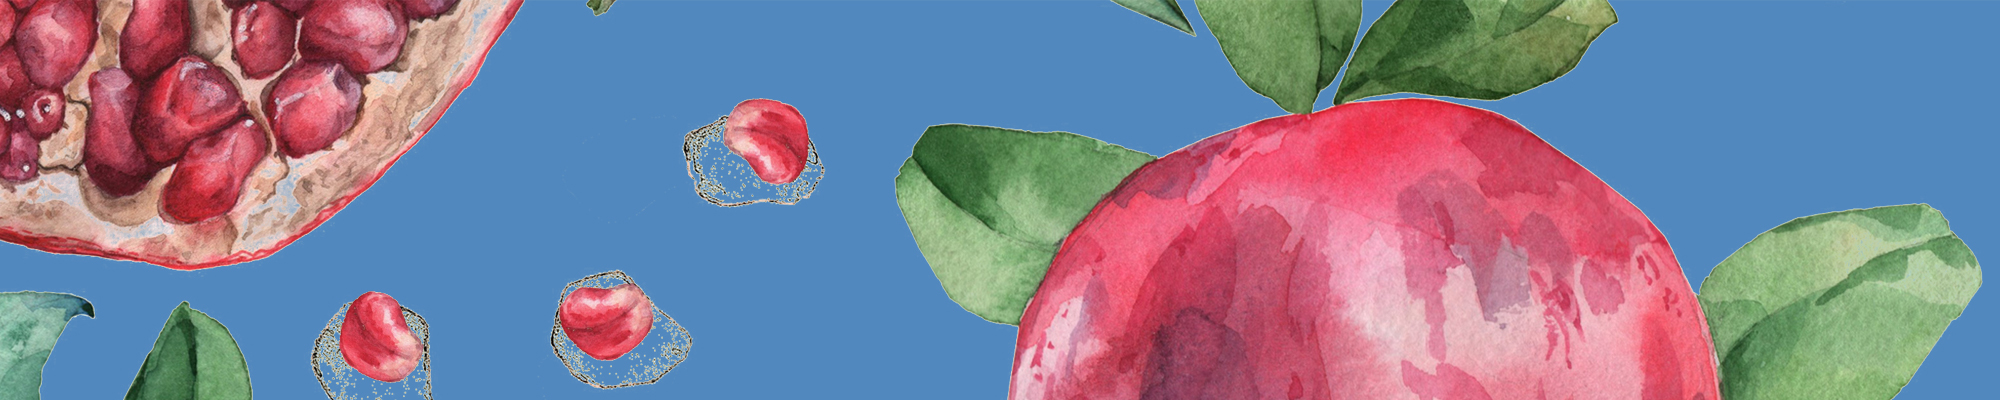 banner_pomegranate-and-clove